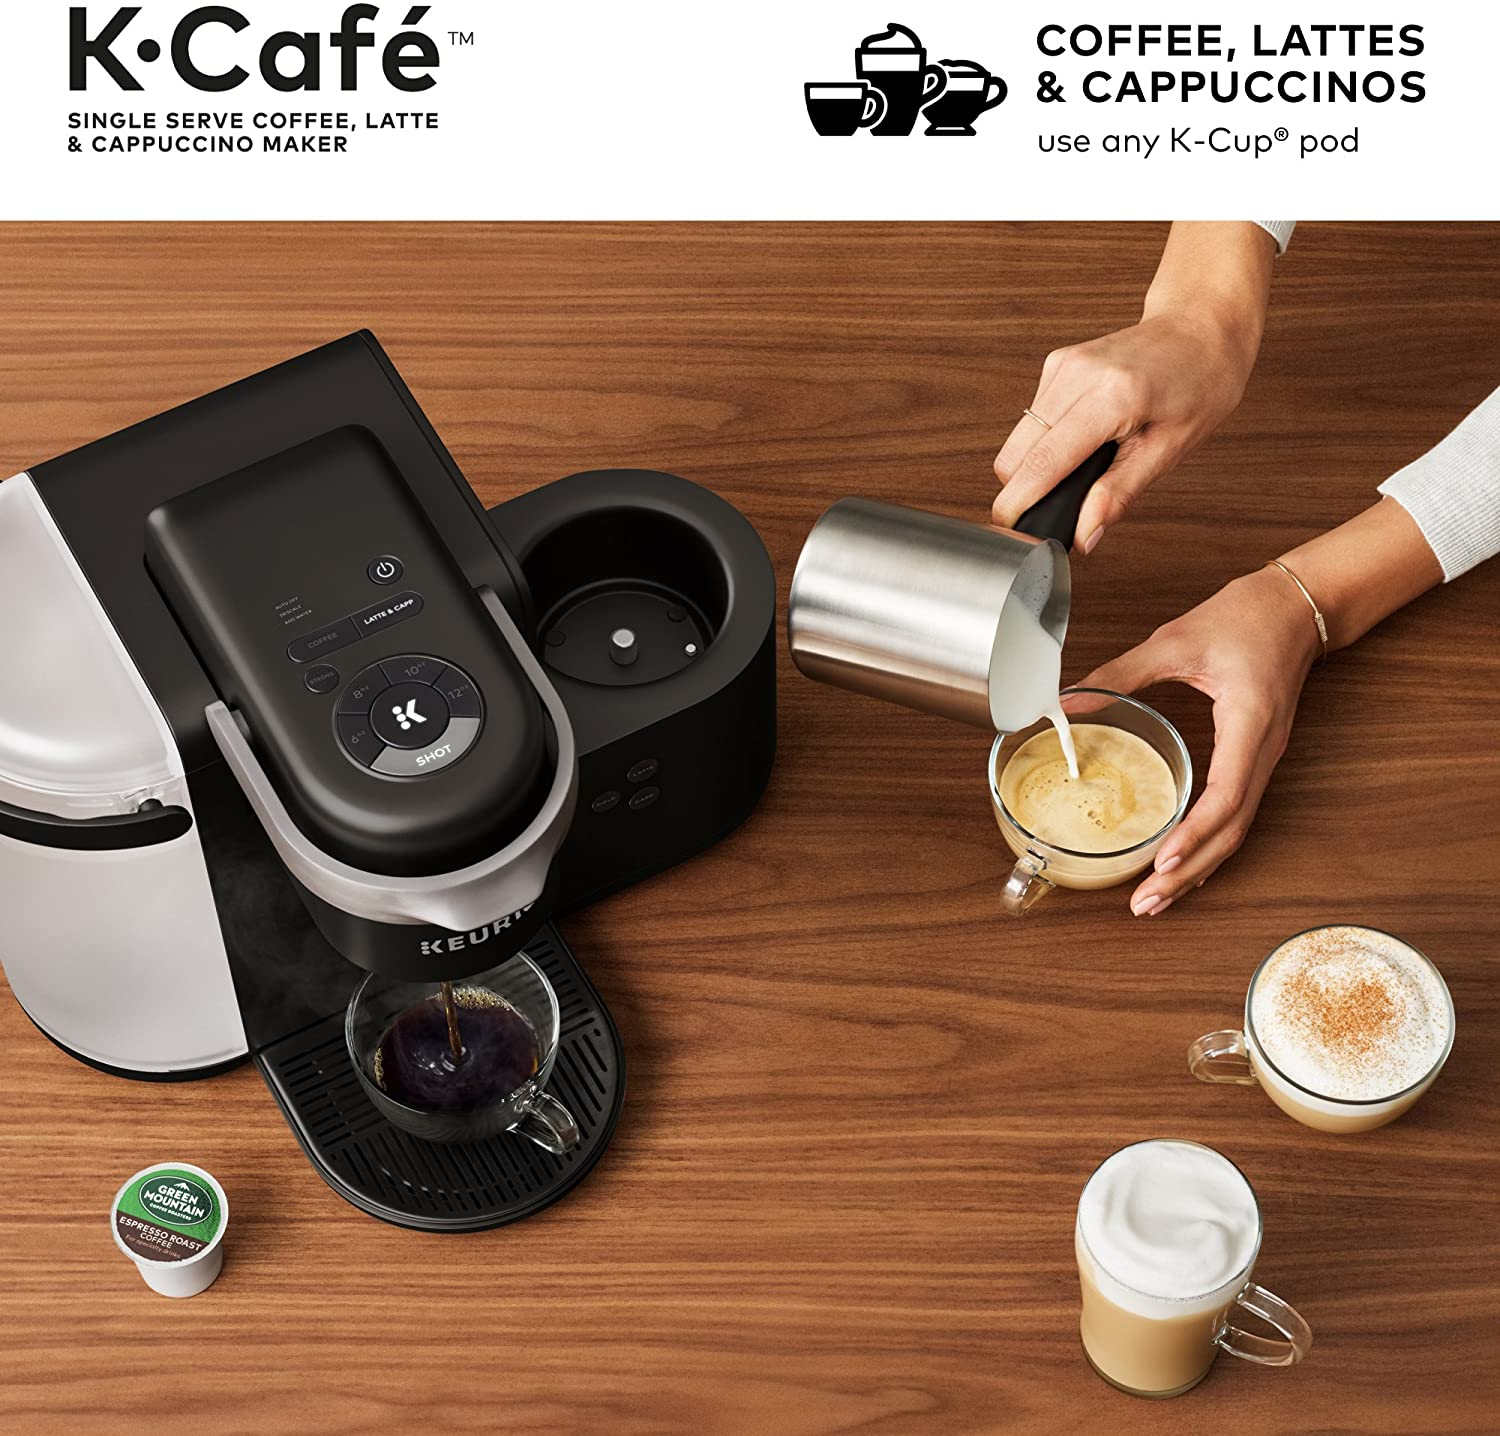 Best Espresso and Coffee Maker in 2020: Reviews & Buying Guide 9